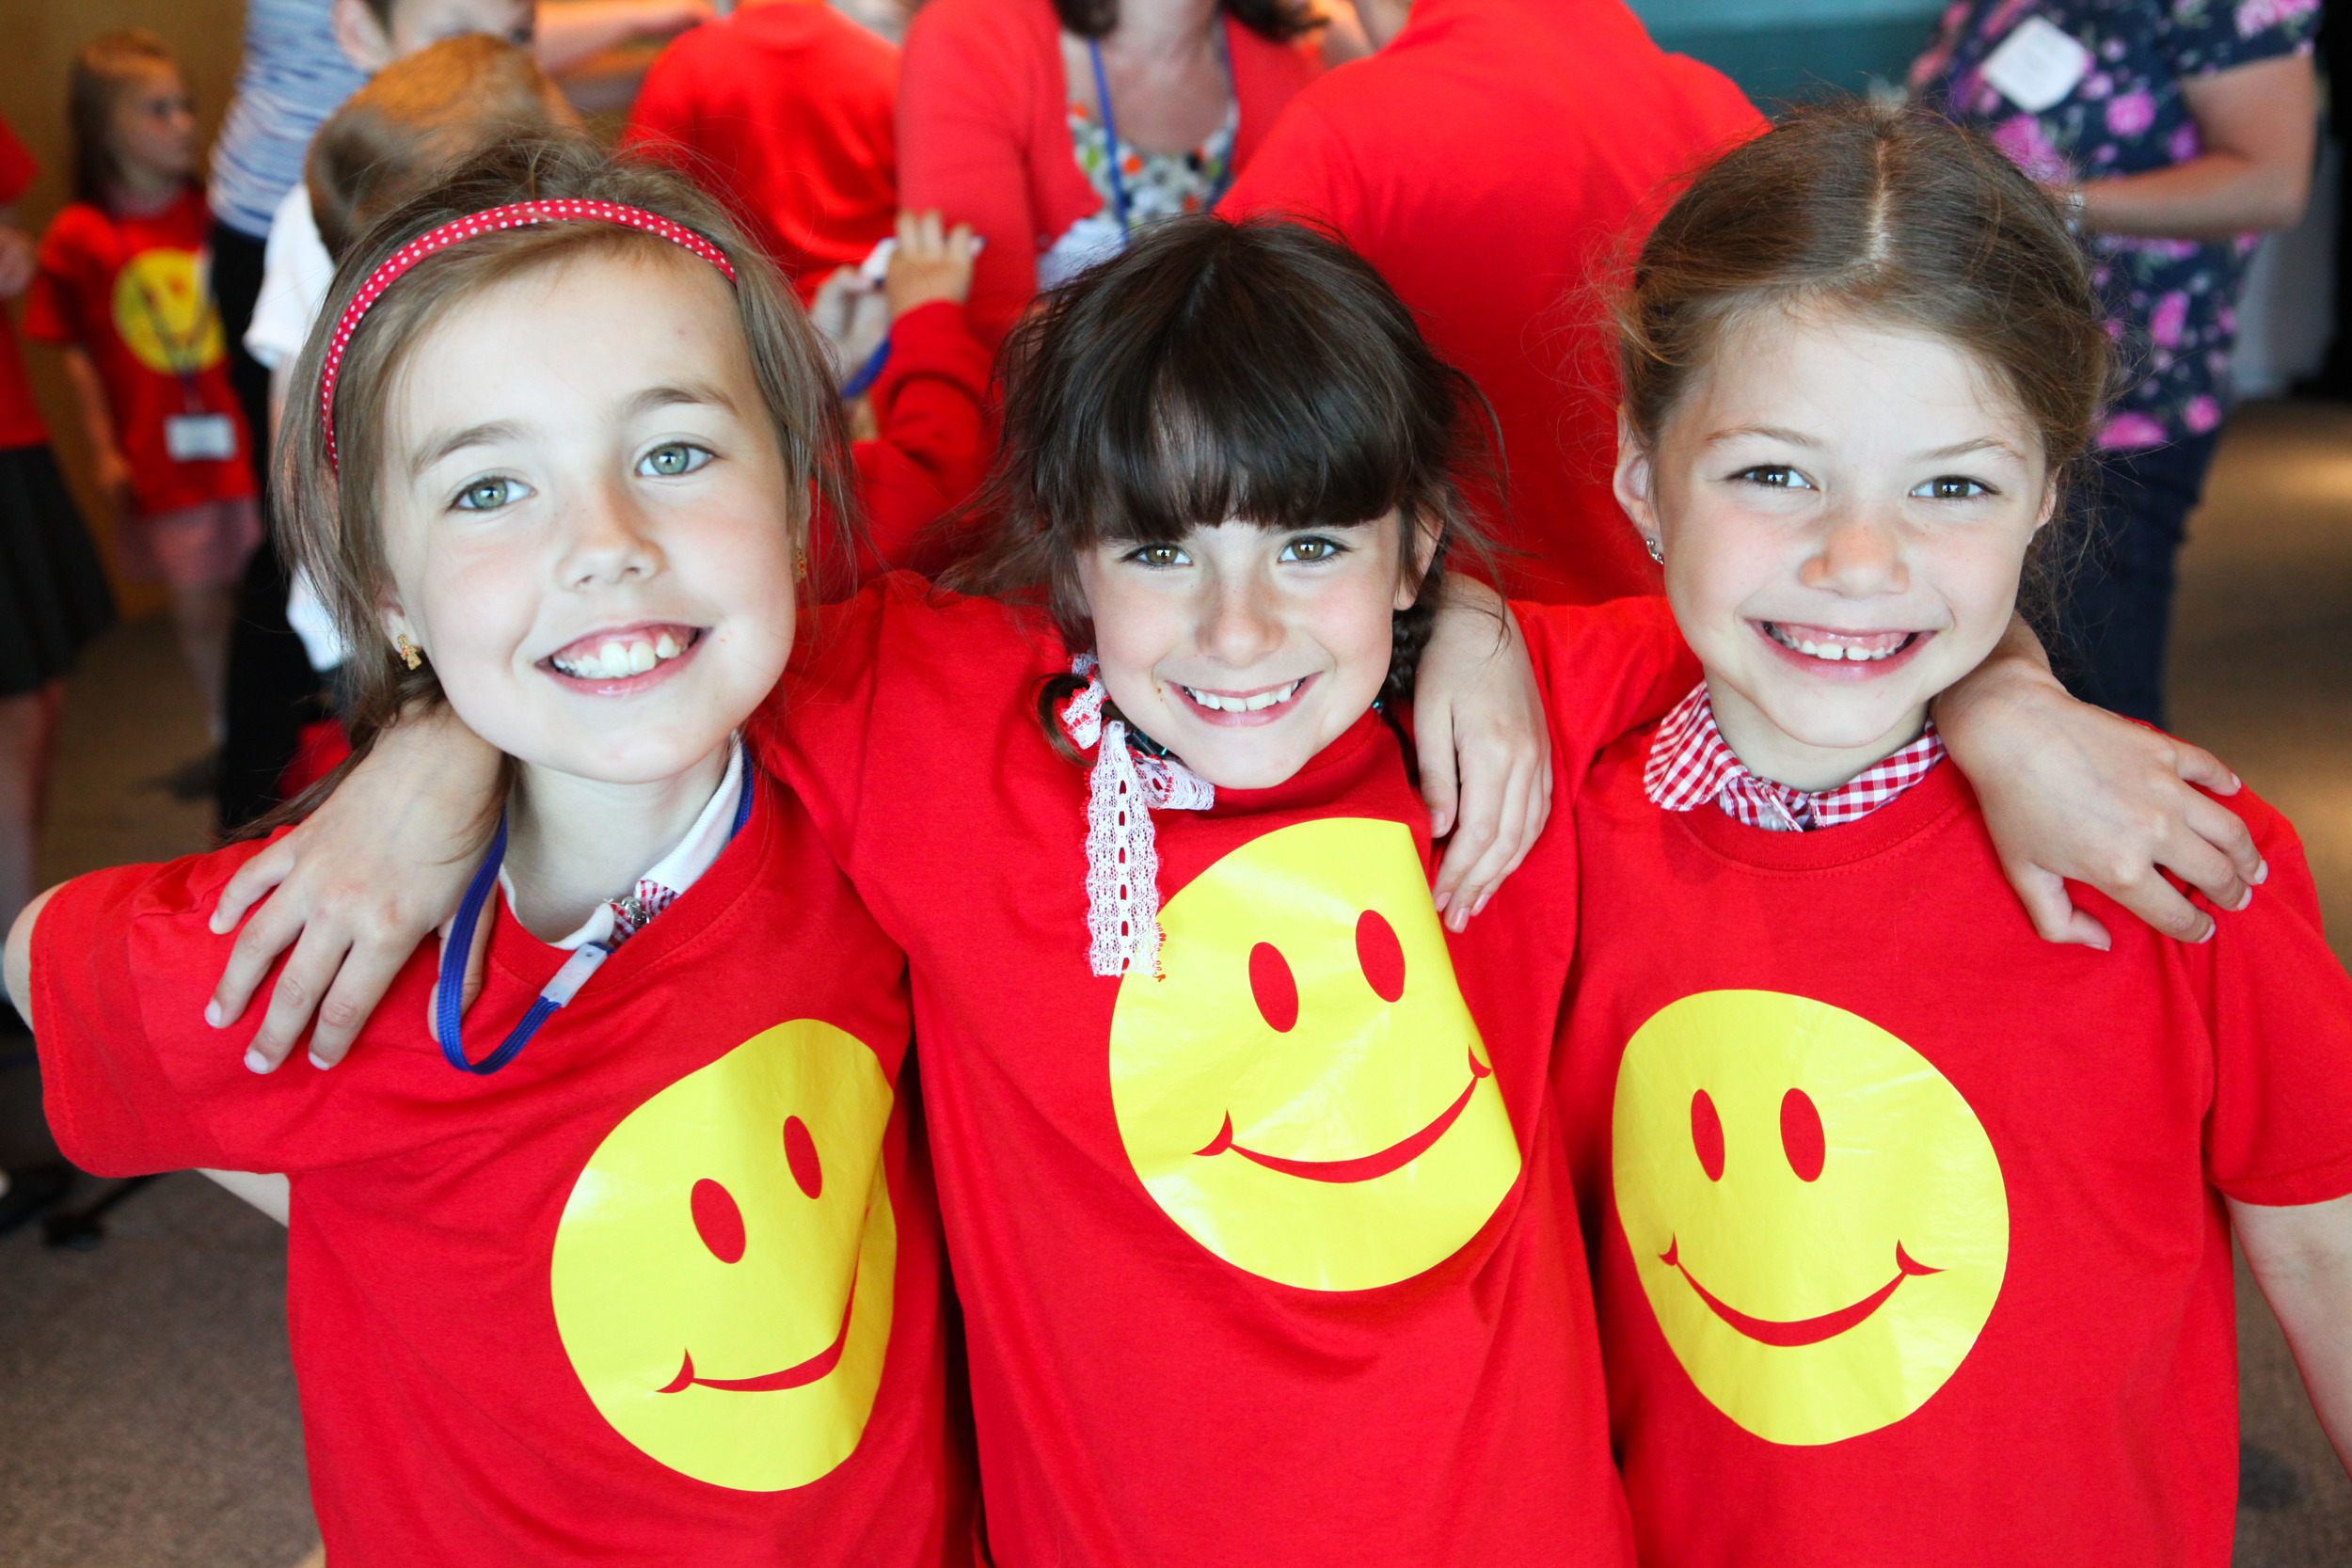 Barclays smiley afce t-shirts.jpg